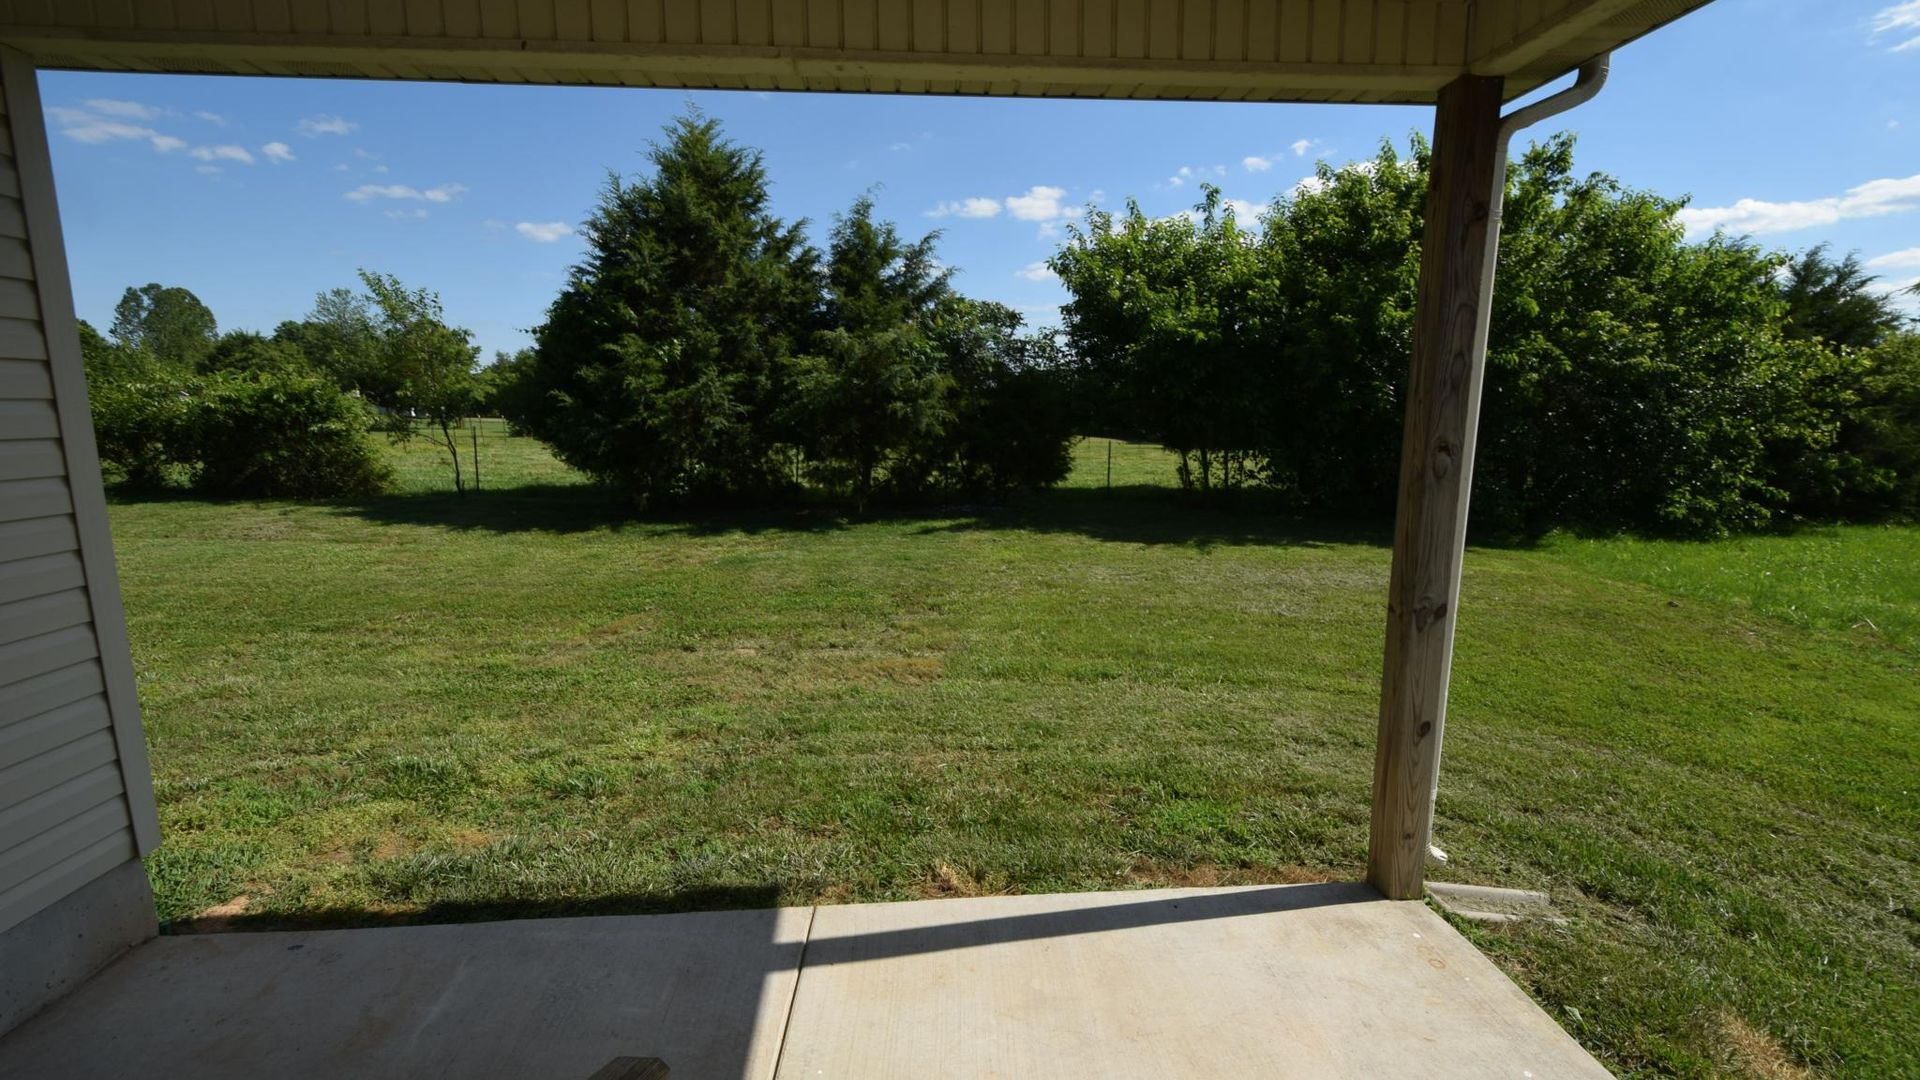 Construction Pergola Bois Plan houses for rent in battlefield mo - 8 homes | zillow